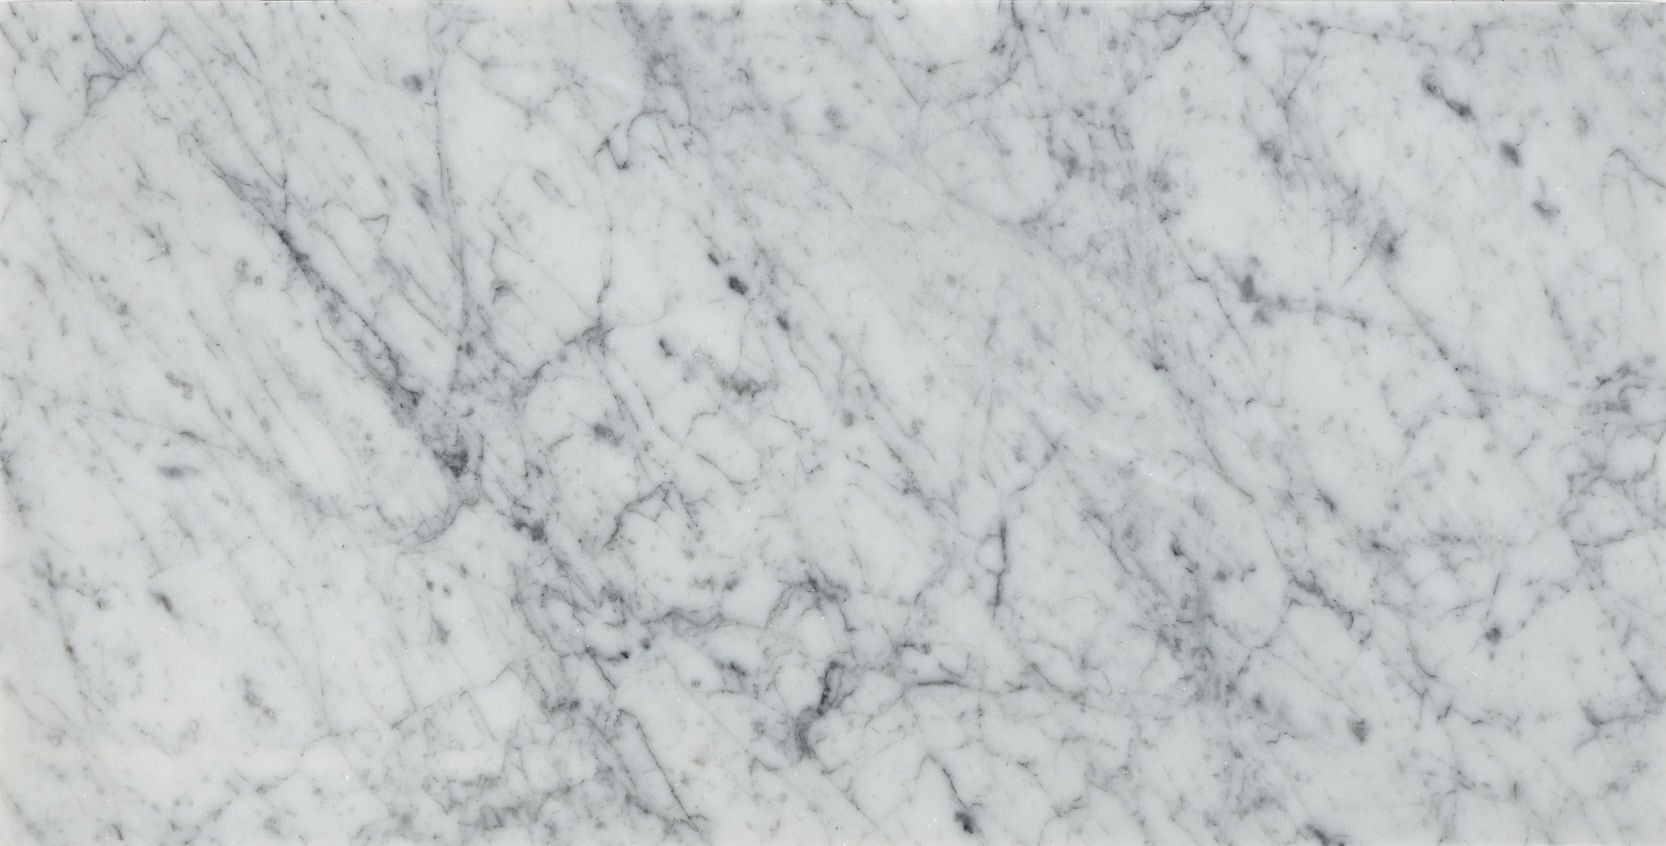 Is Marble The Best Option For Me?